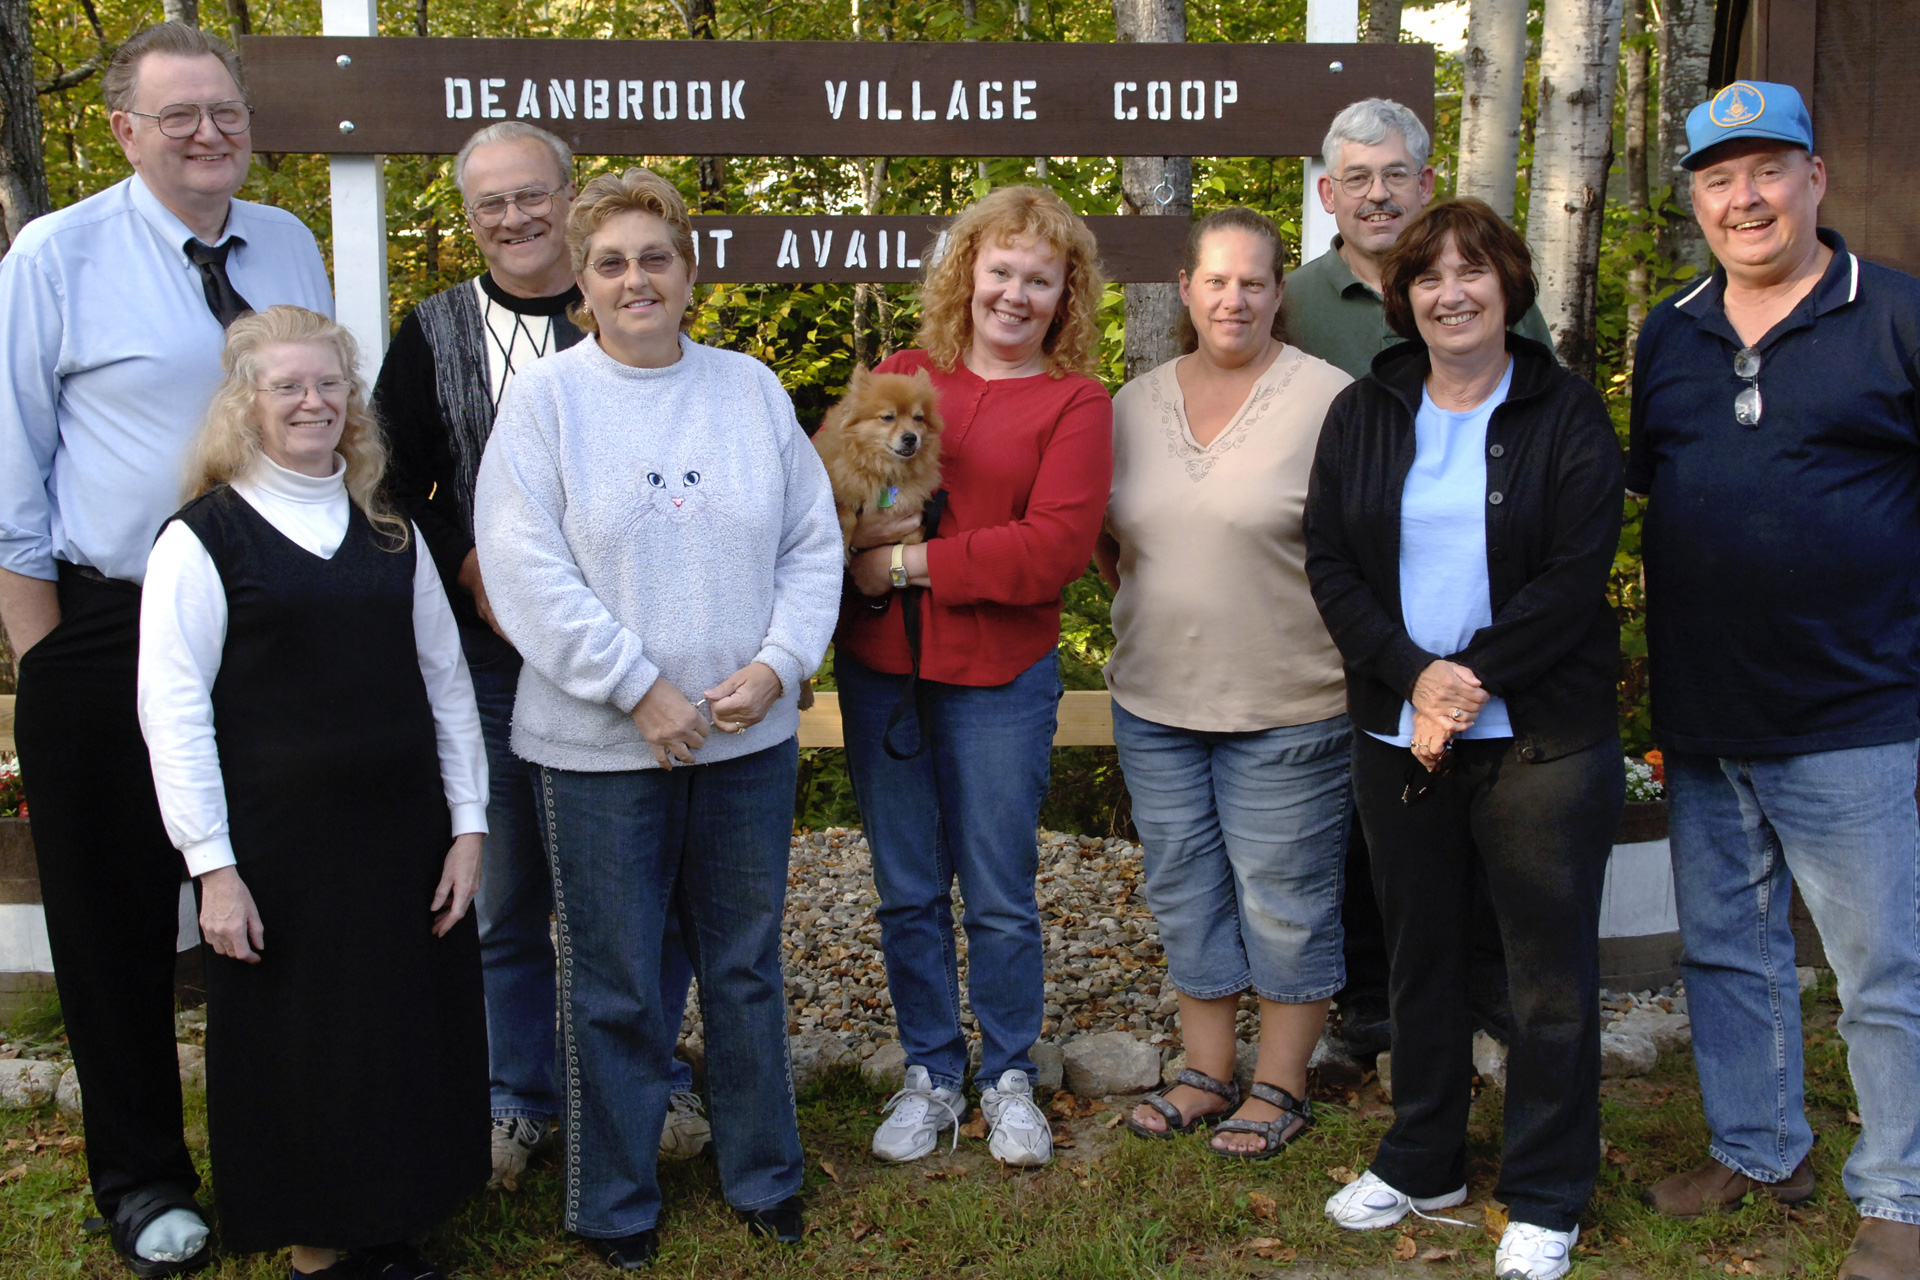 A group of adults stand in front of a sign that reads Deanbrook Village Coop